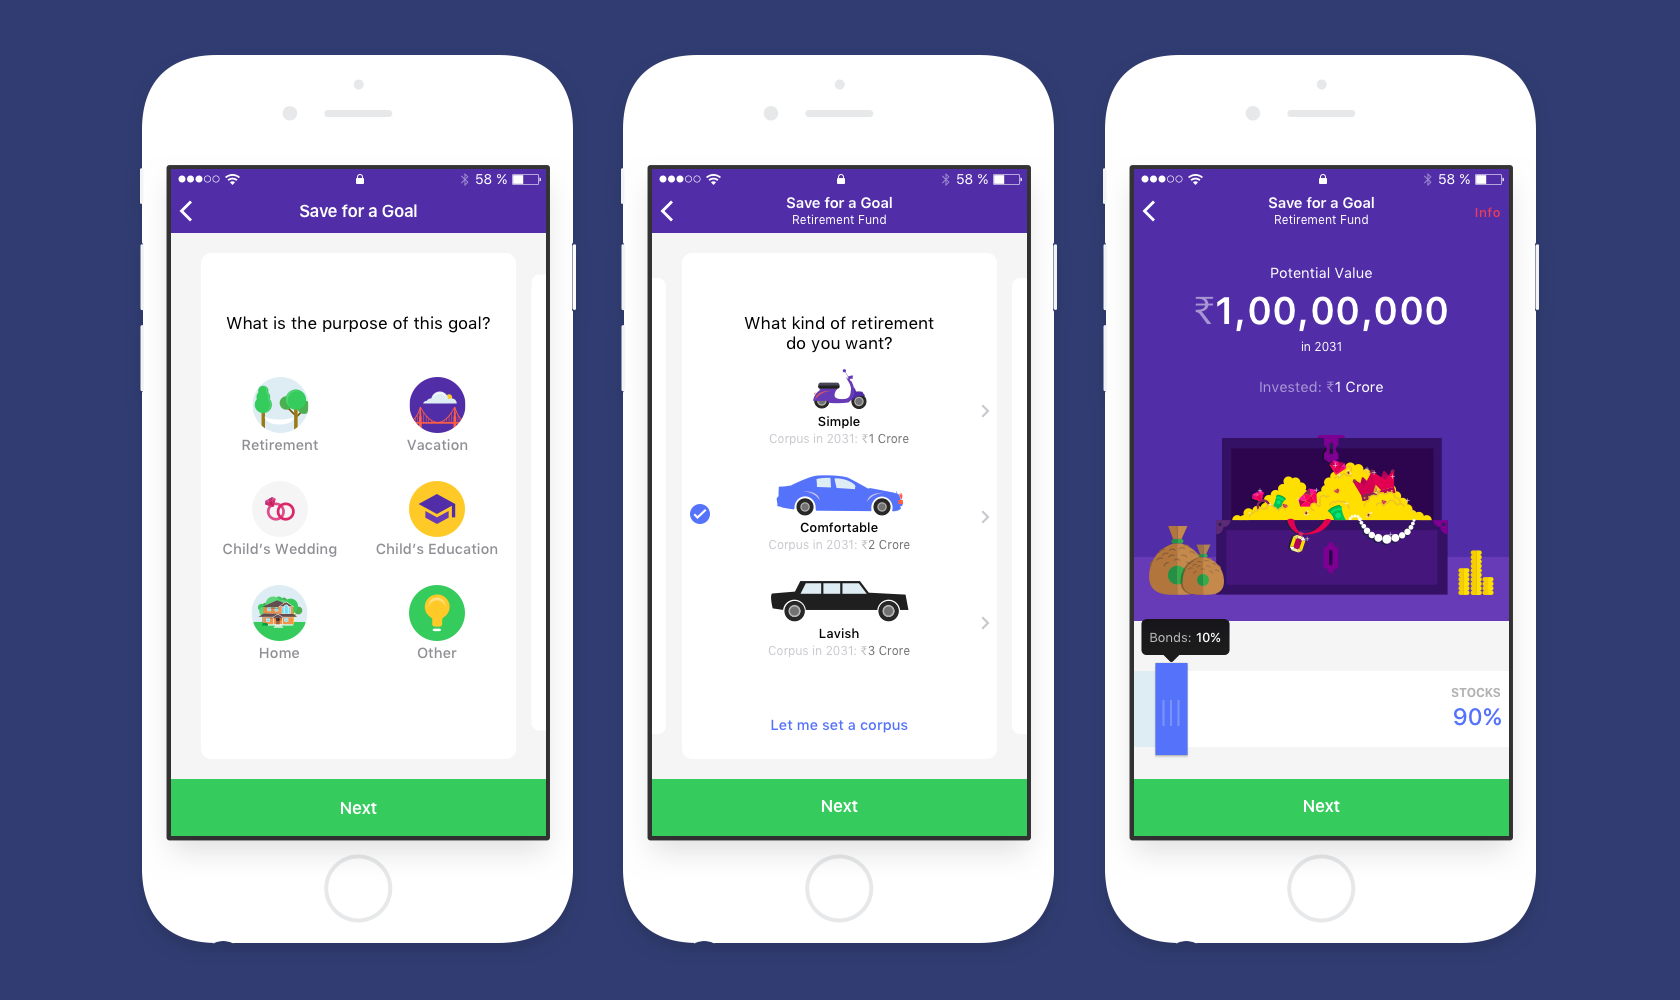 The fintech app's UX and UI are geared towards financial goals